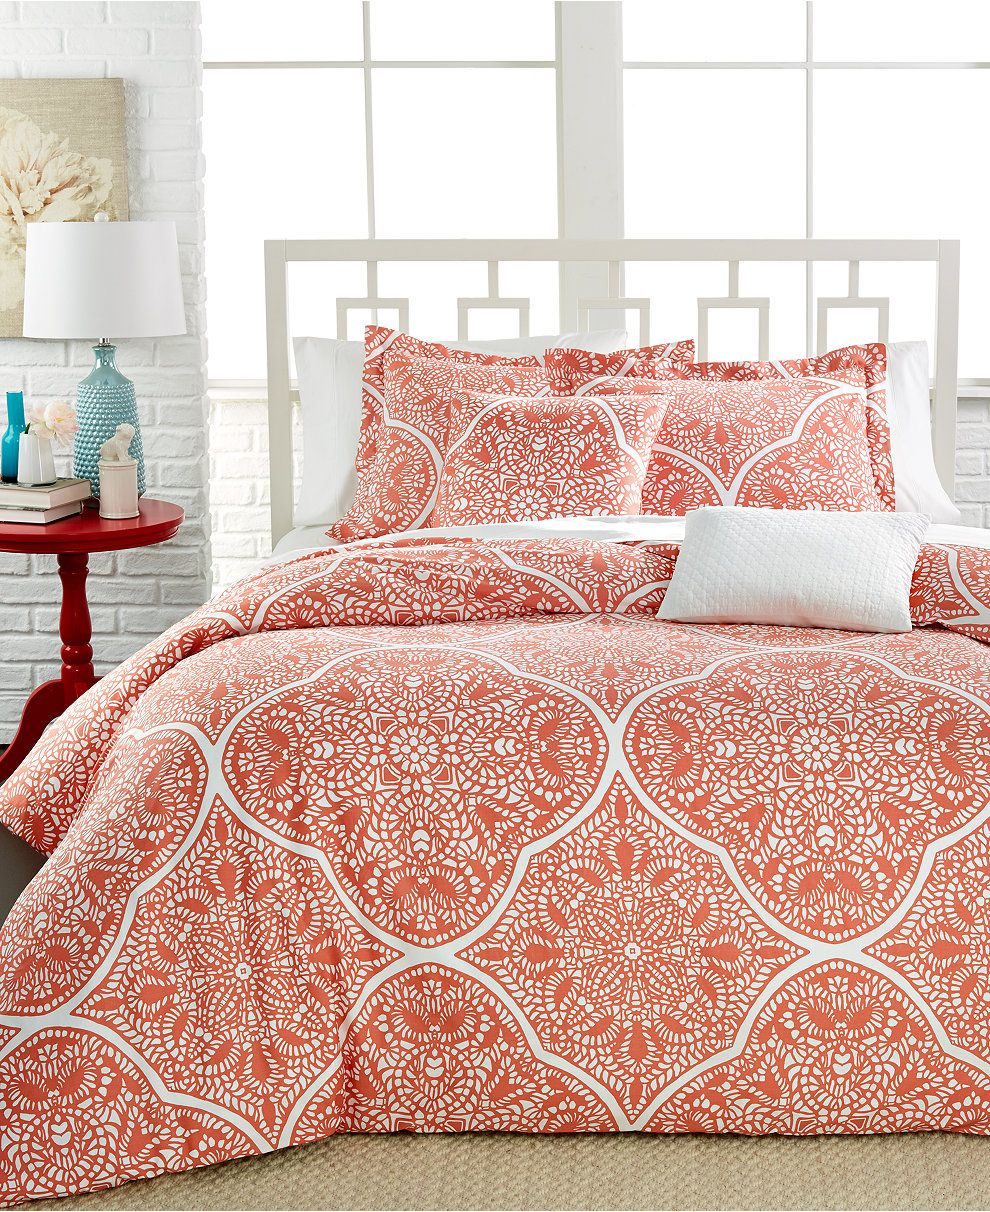 Jackie Printed Cotton 5-Pc. Full/Queen Comforter Set - Bed in a Bag - Bed & Bath - Macy's